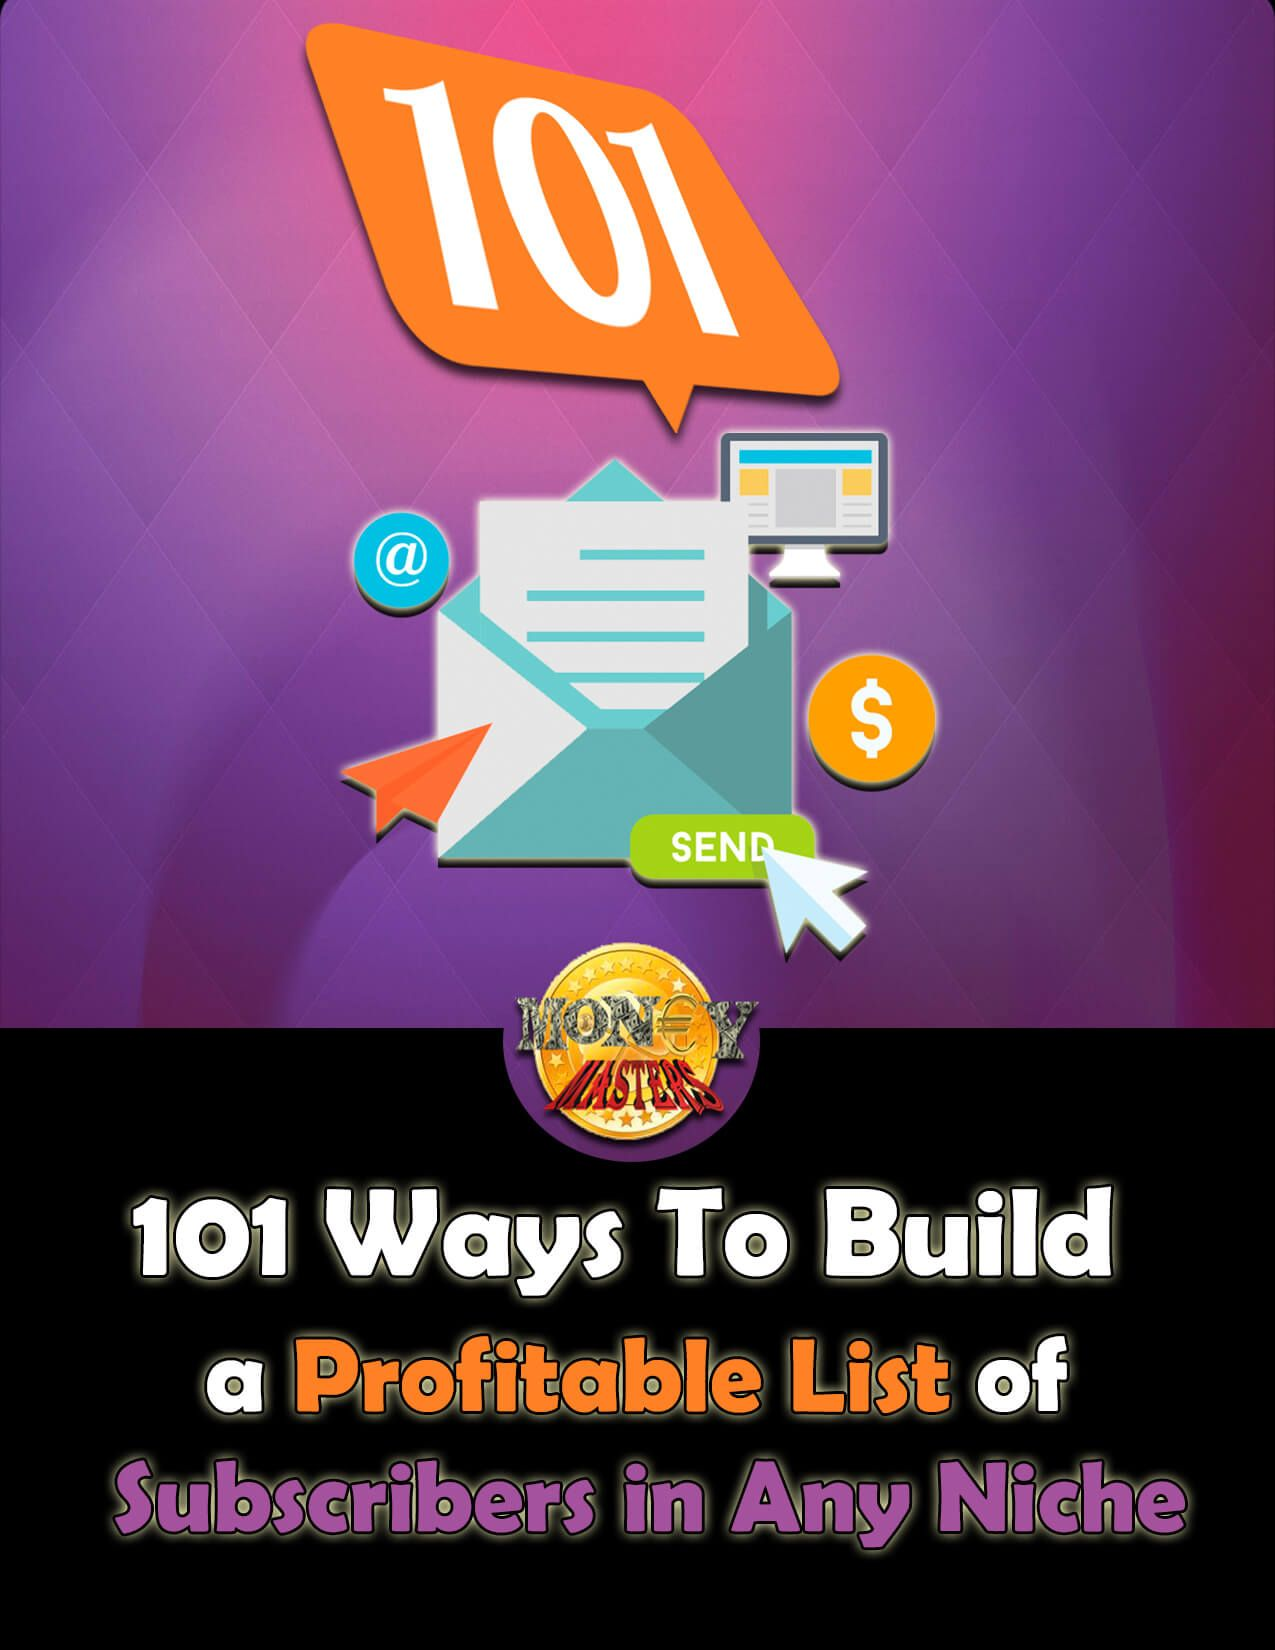 Free eBook: 101 Ways To Build a Profitable List of Subscribers in Any Niche.  https://www.slideshare.net/i-MoneyMasters/101-ways-to-build-a-profitable-list-of-subscribers-in-any-niche